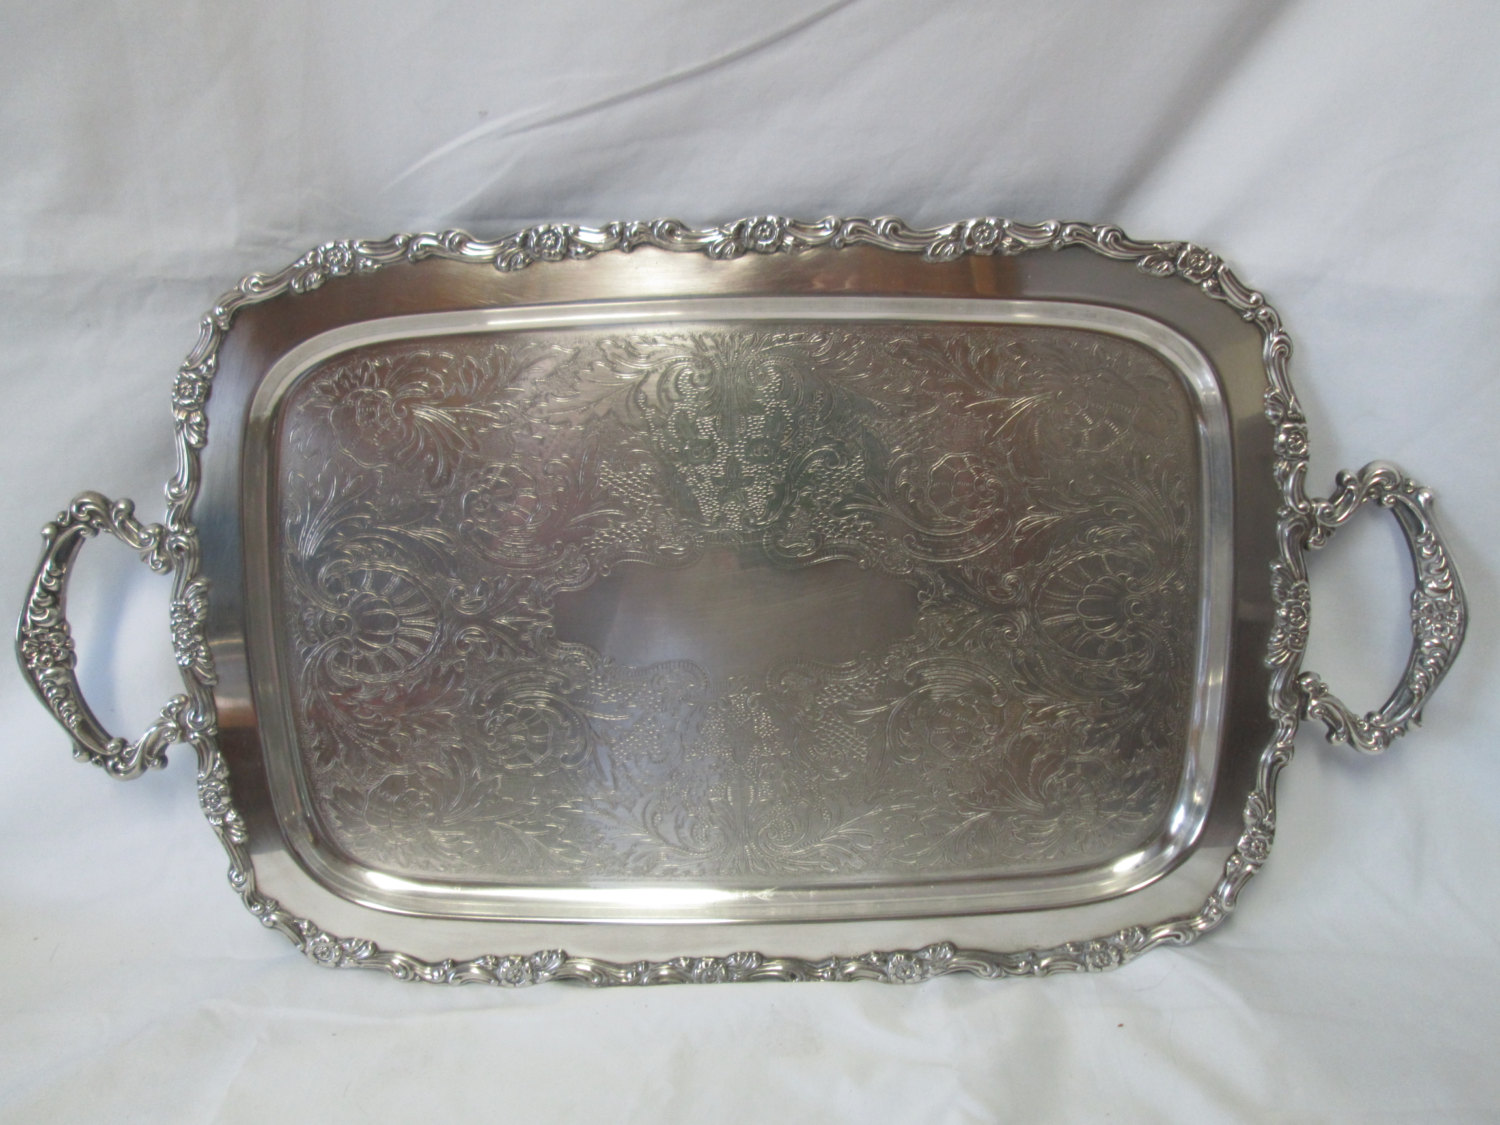 Beautiful Large Rectangular Serving Tray Silver Plate Handled With Ornate Handles And Edges Scrolls